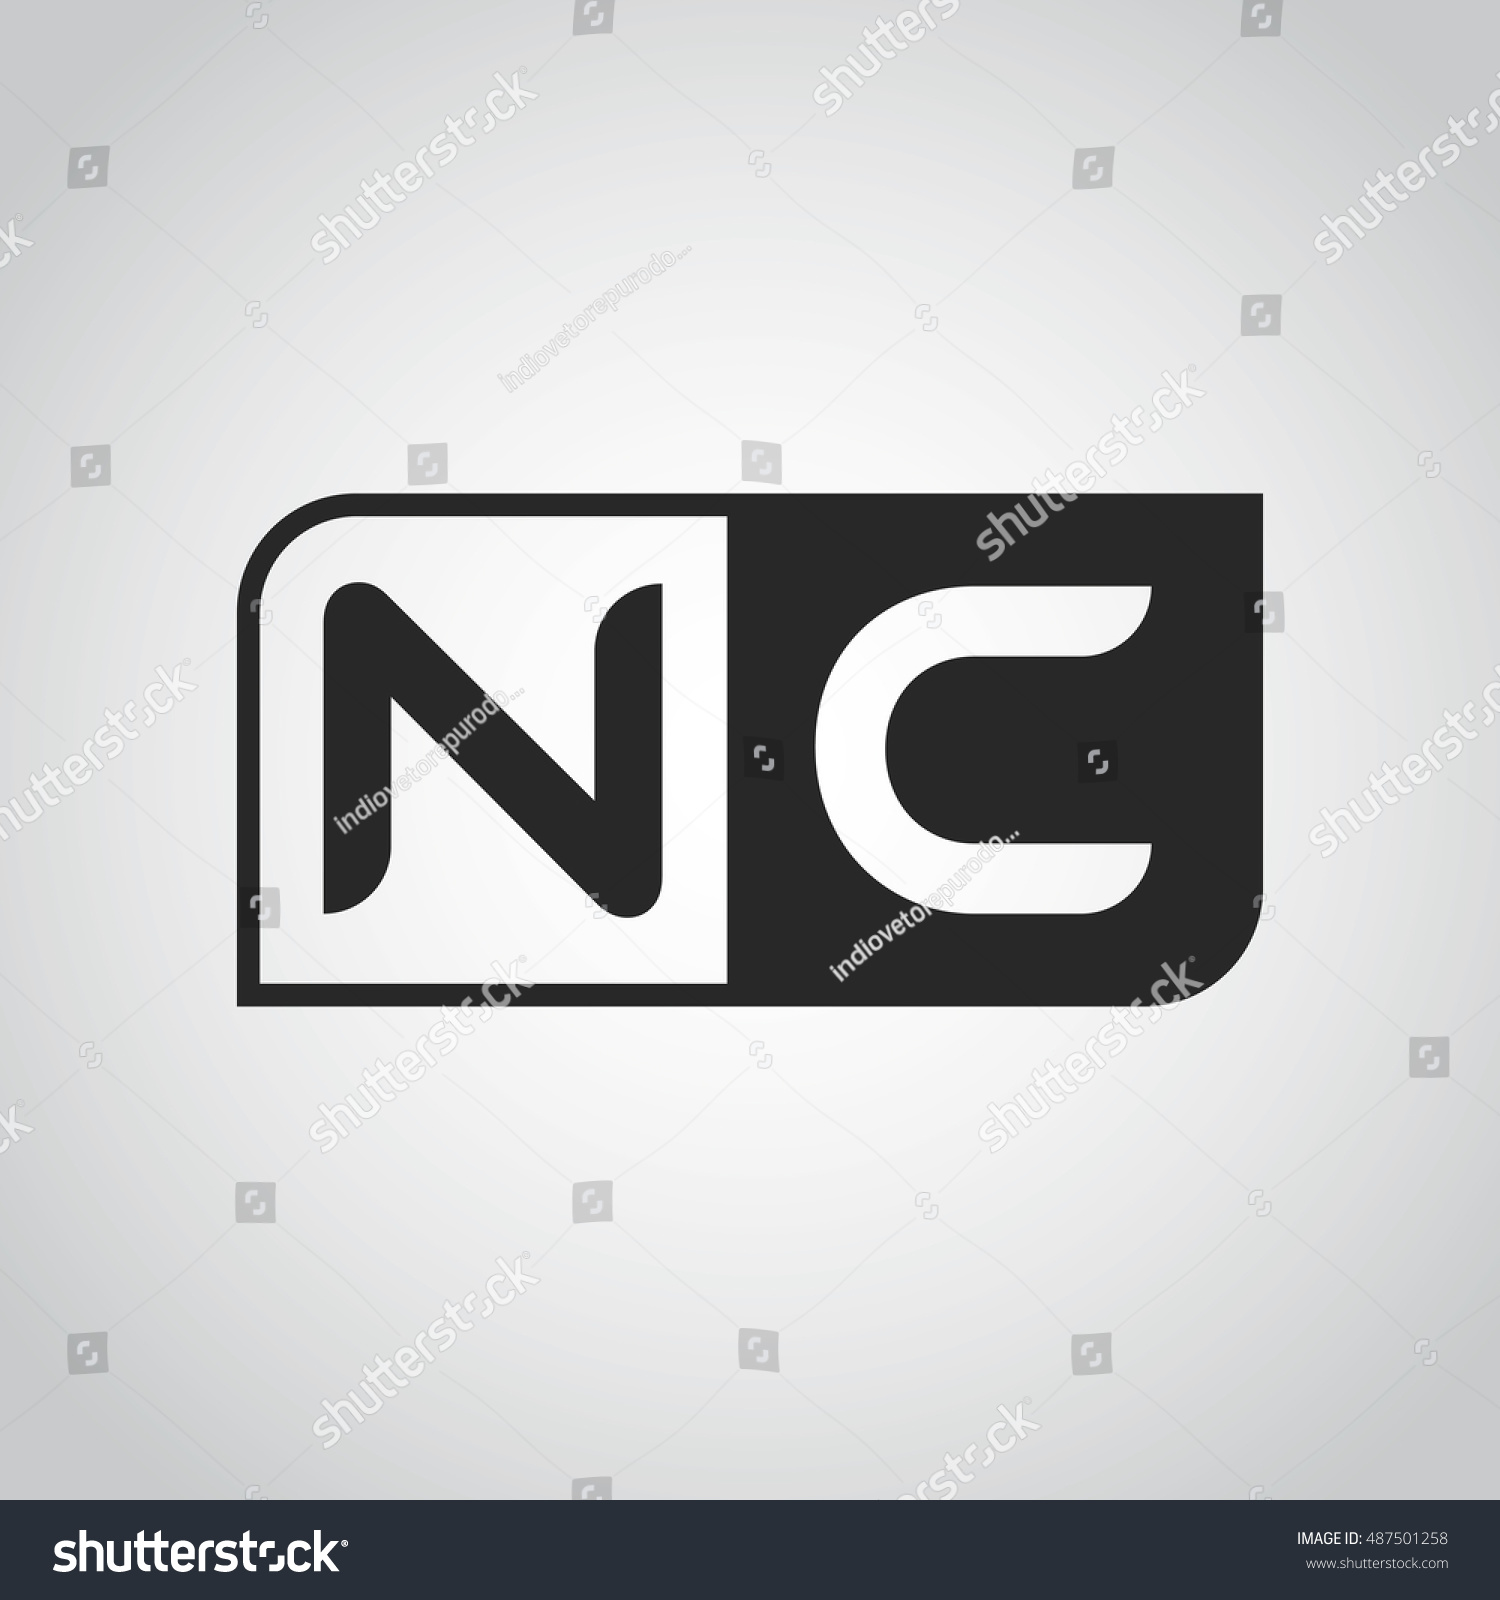 Abbreviations Letter Name Identity Logo Symbol Stock Illustration ...